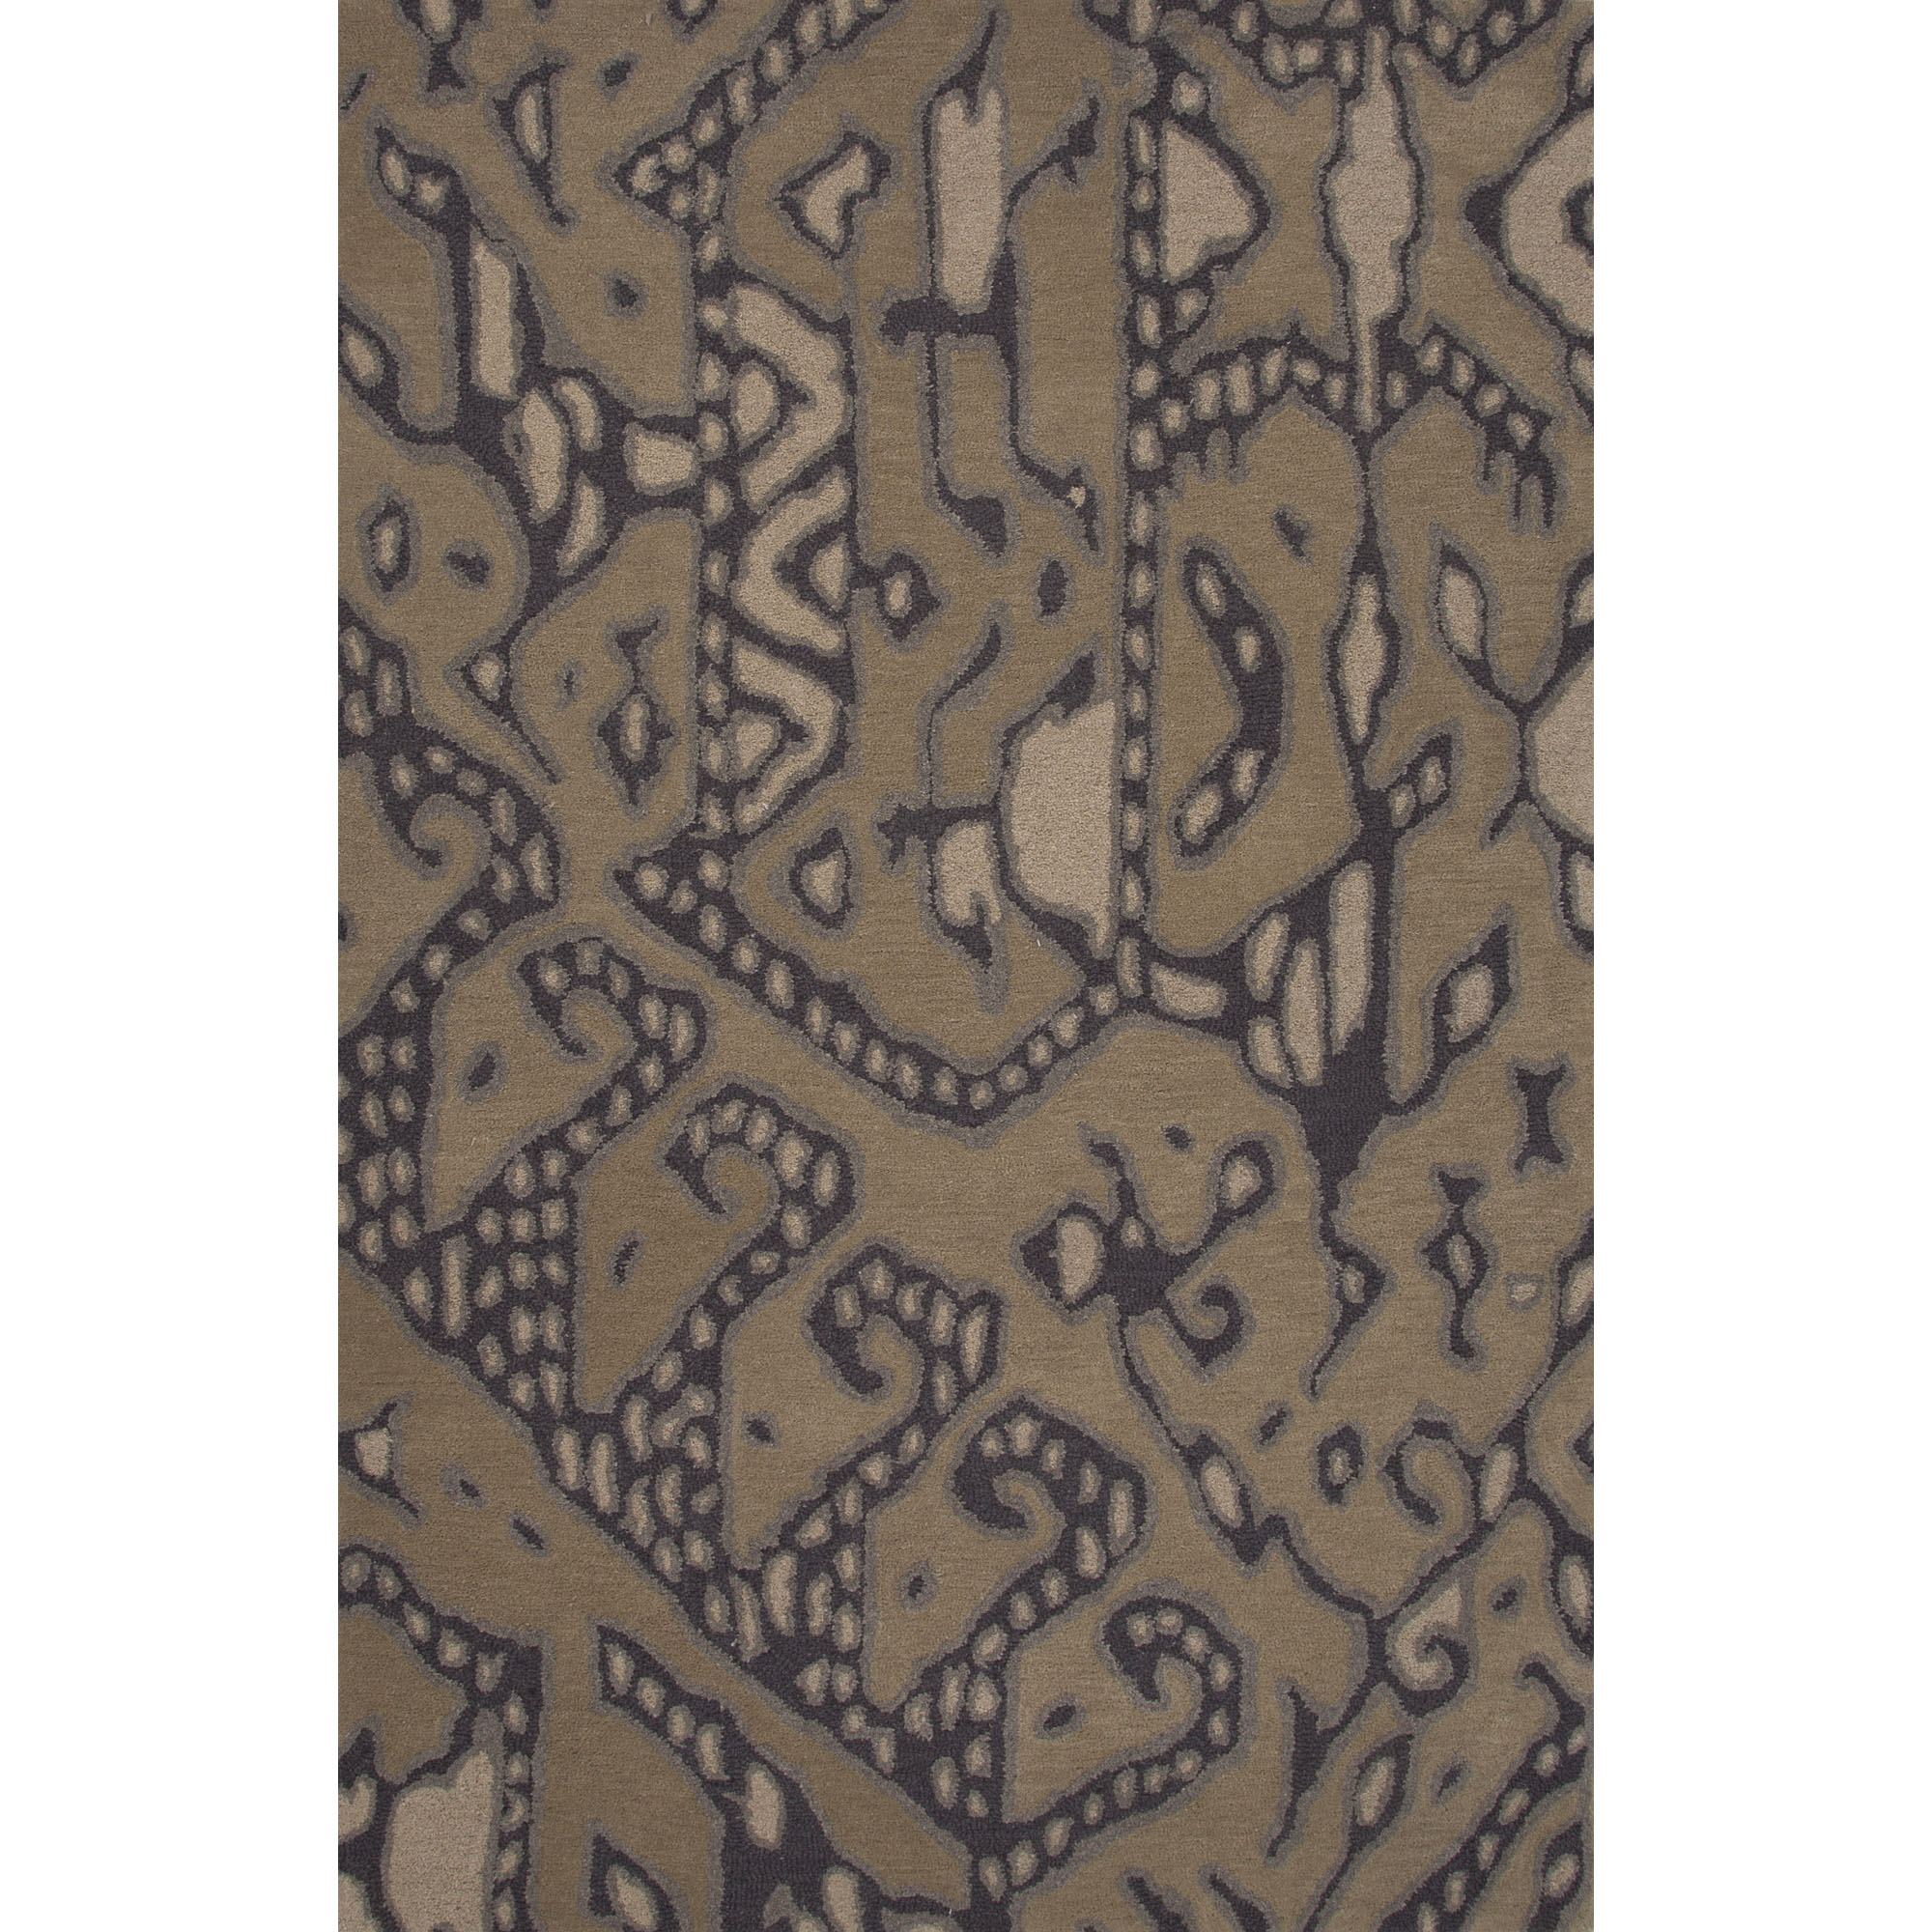 JAIPUR Rugs Traditions Made Modern Tufted 2 x 3 Rug - Item Number: RUG122199